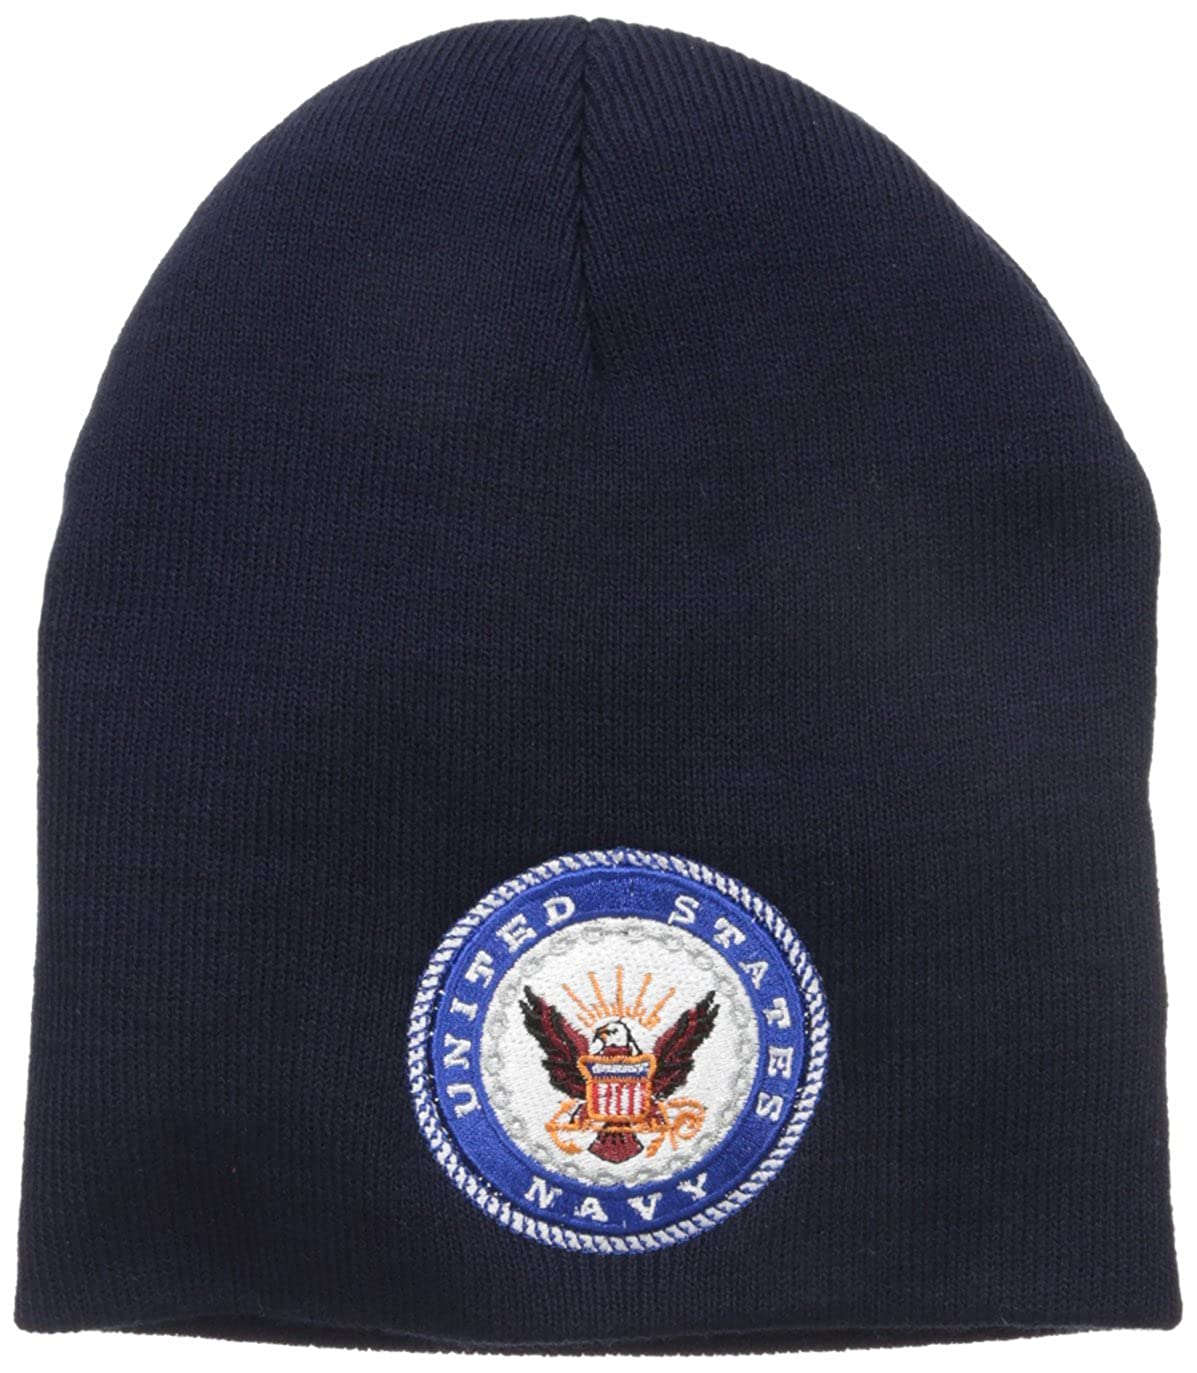 Rapid Dominance Classic Military Work Beanies